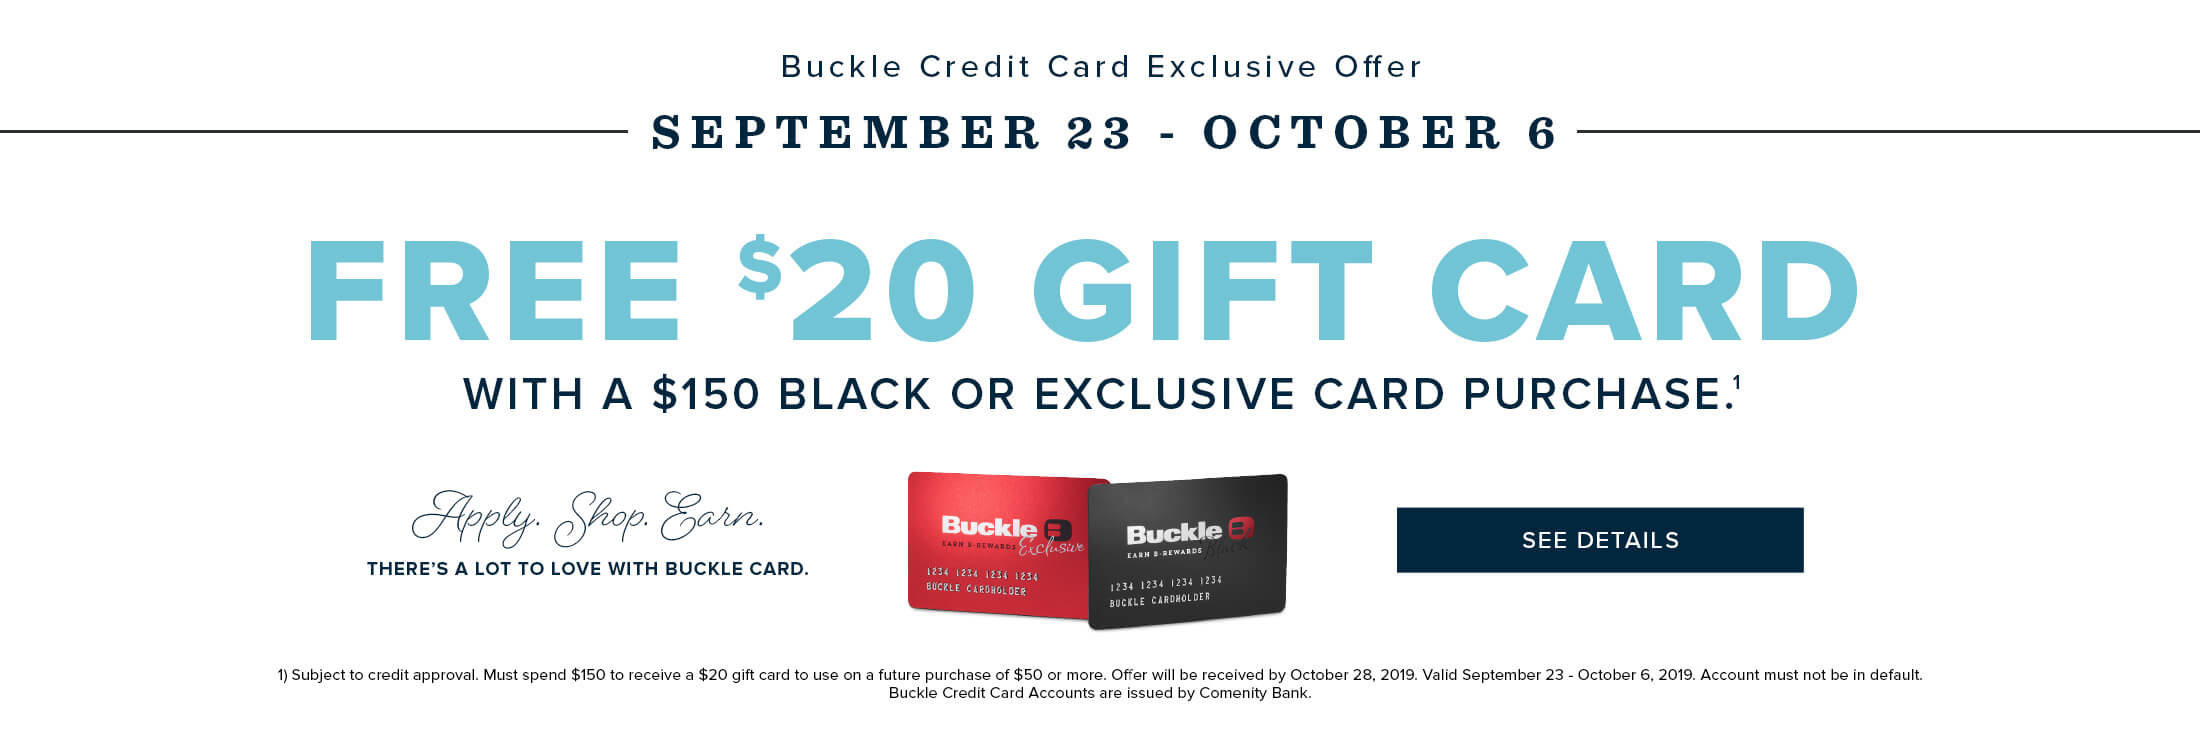 Buckle Credit Card Exclusive Offer: September 23 - October 6: Free $20 Gift Card with a $150 Black or Exclusive Credit Card Purchase.